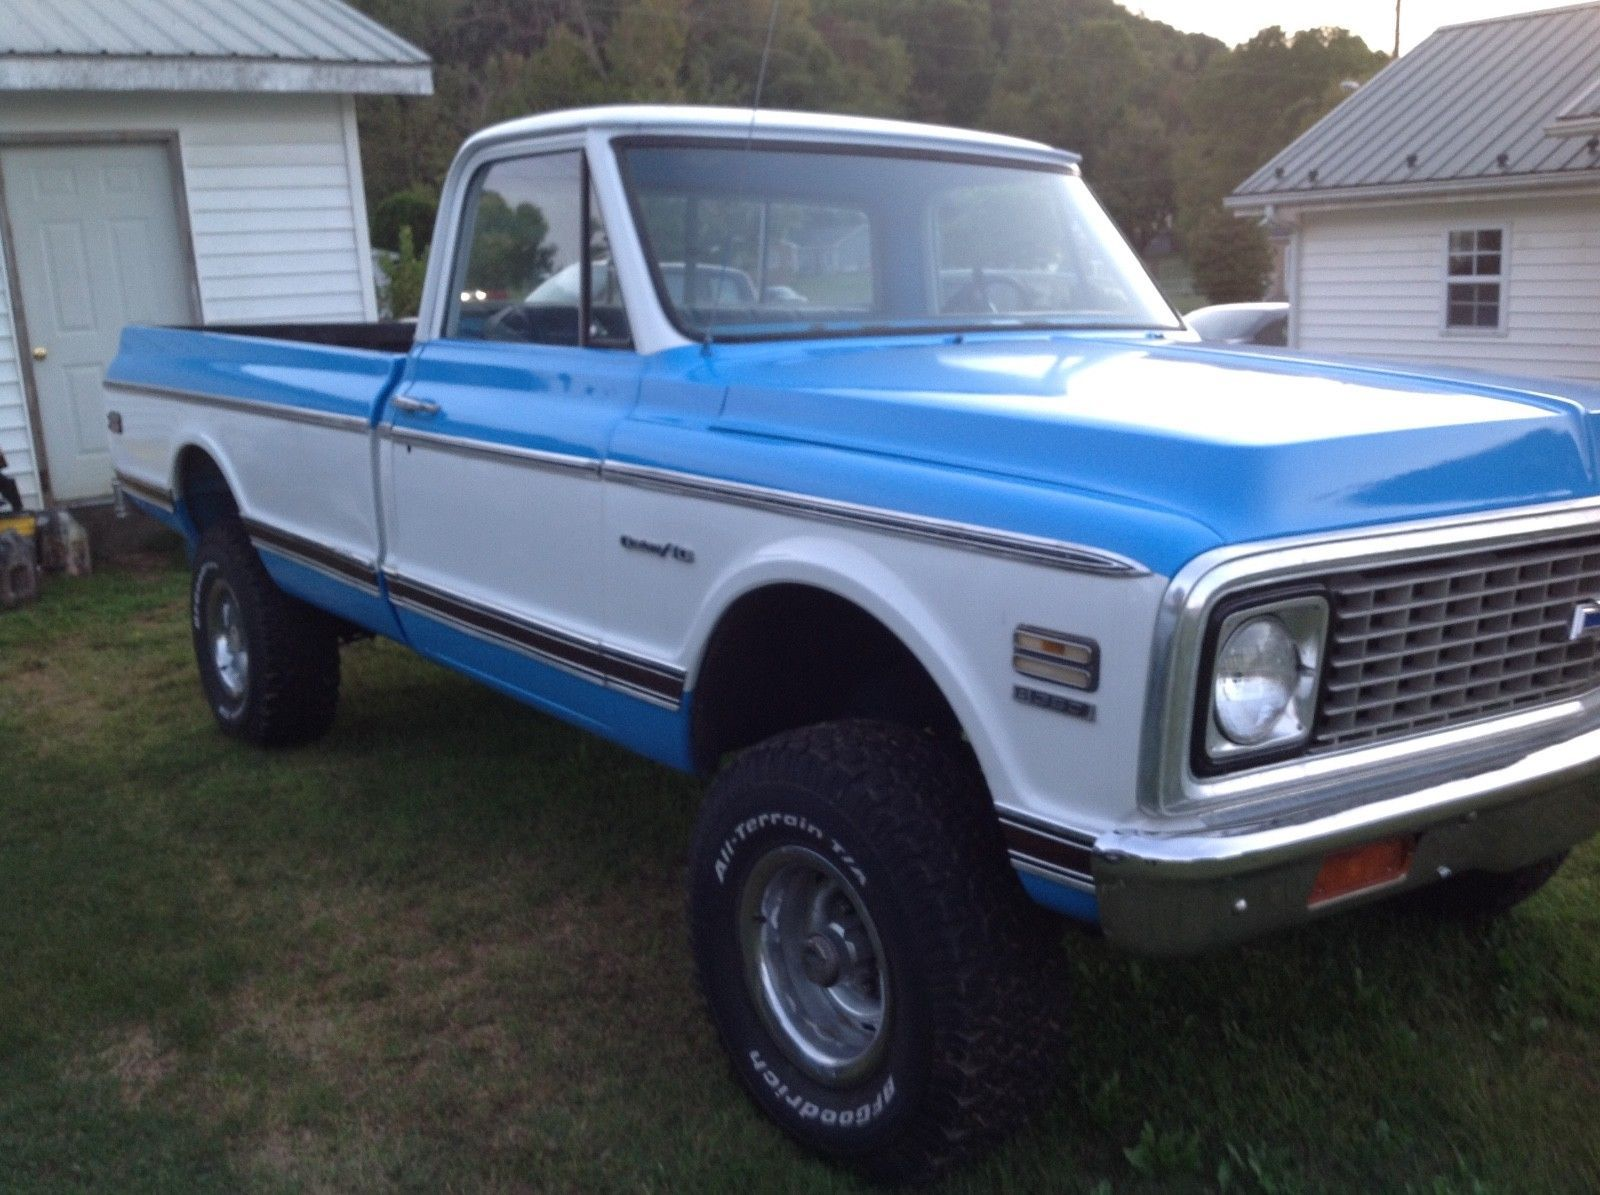 All Chevy 1969 chevy c10 for sale : Awesome Great 1969 Chevrolet Other Pickups C10 1969 CHEVY C10 4x4 ...